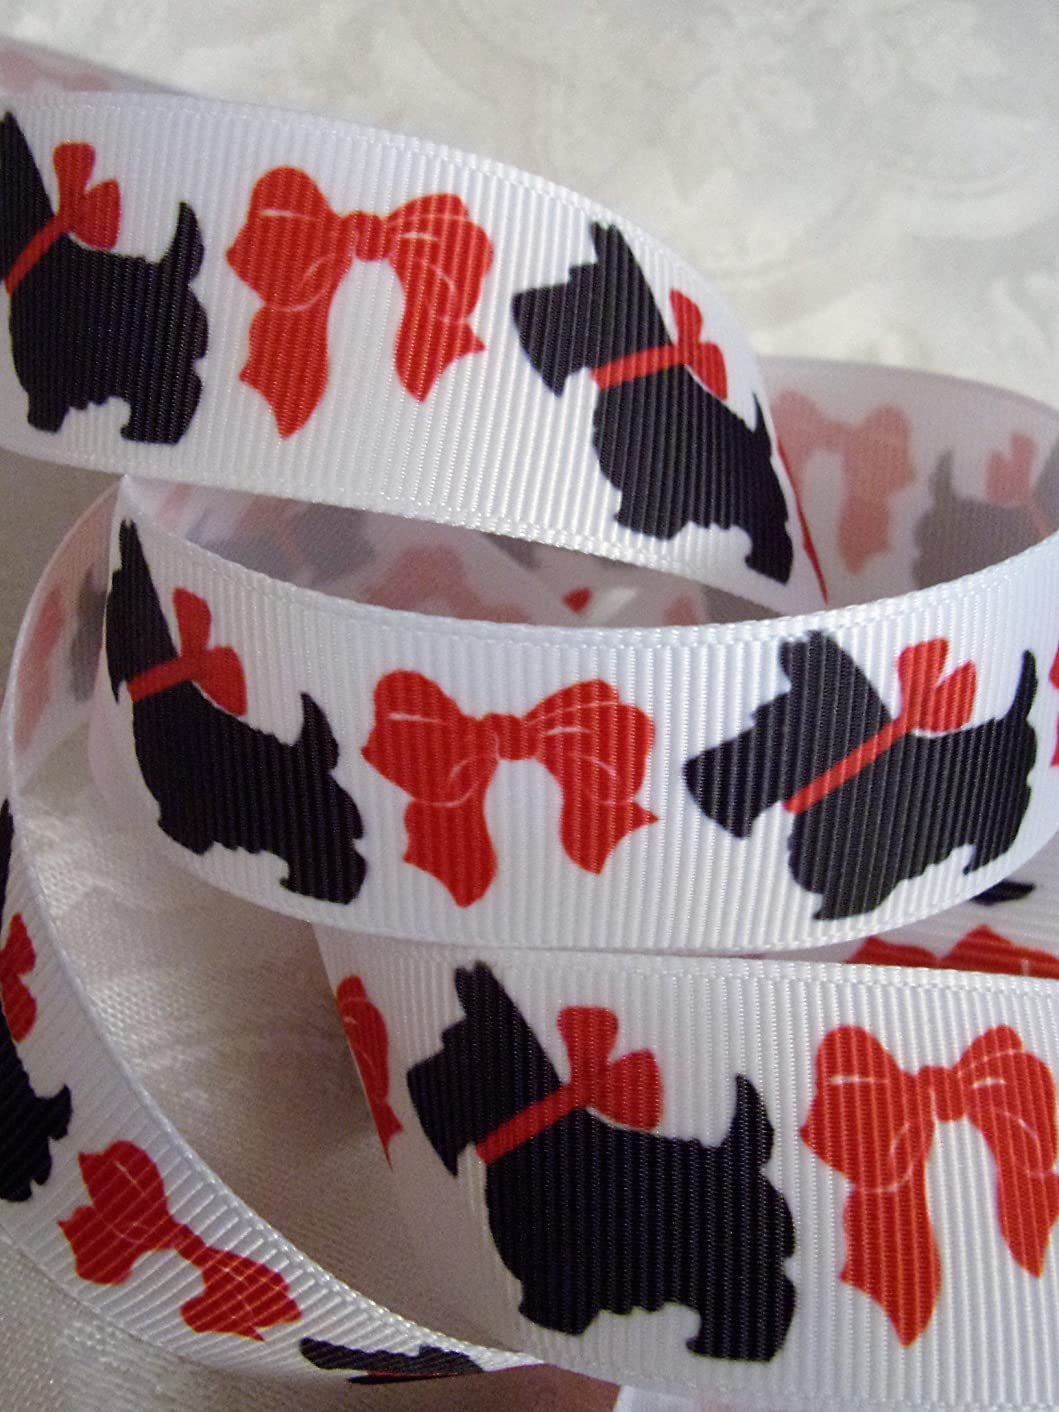 Grosgrain Ribbon Scottish Terrier Dog Print - 1 Inch Wide, 10 Yards - for Hair Bows, Decorating, Craft & Sewing!